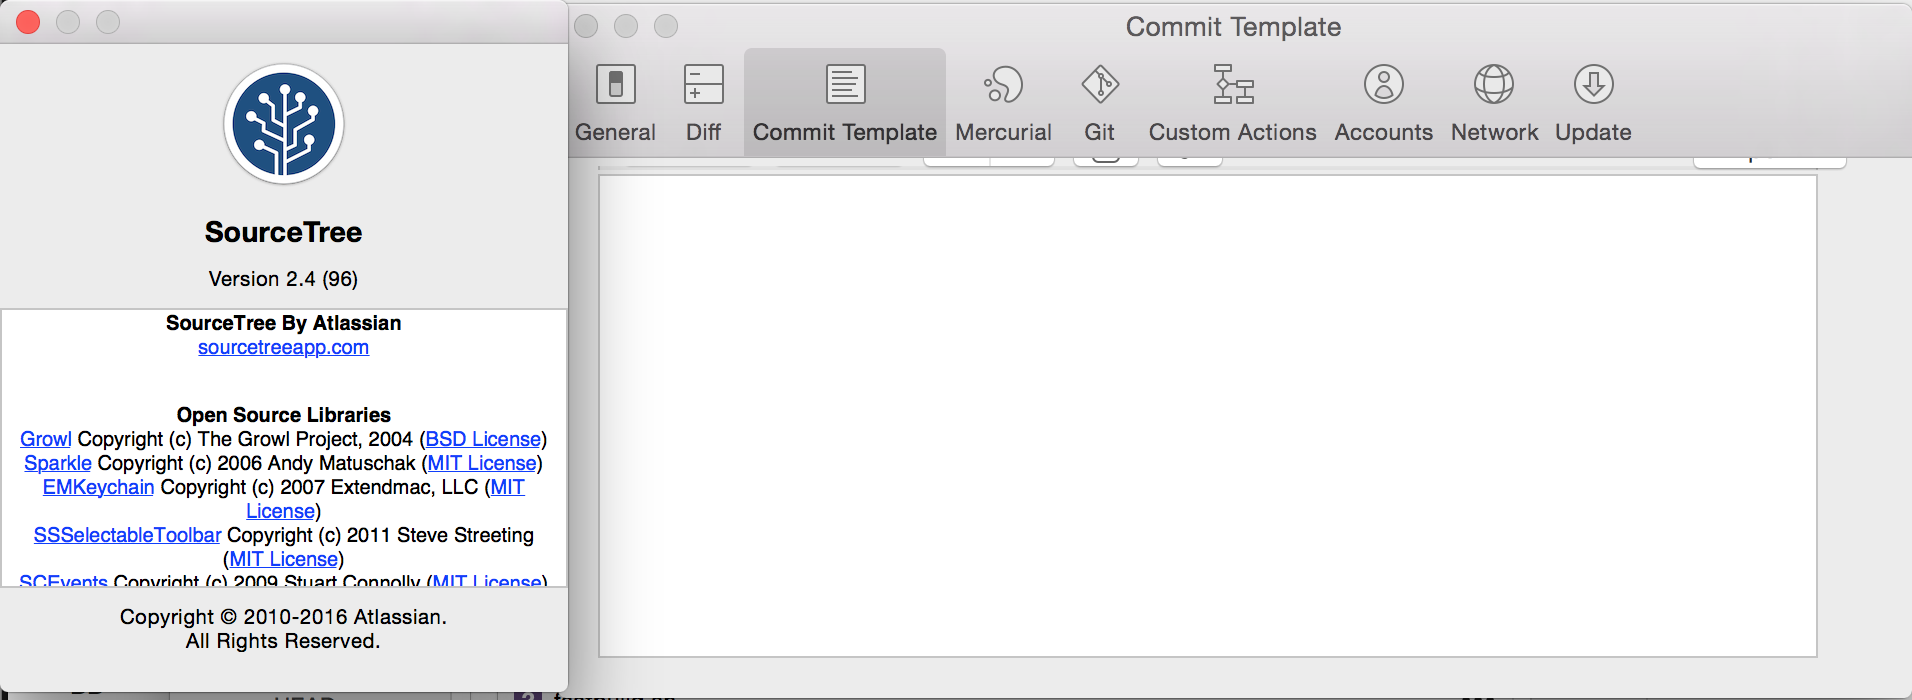 git commit template